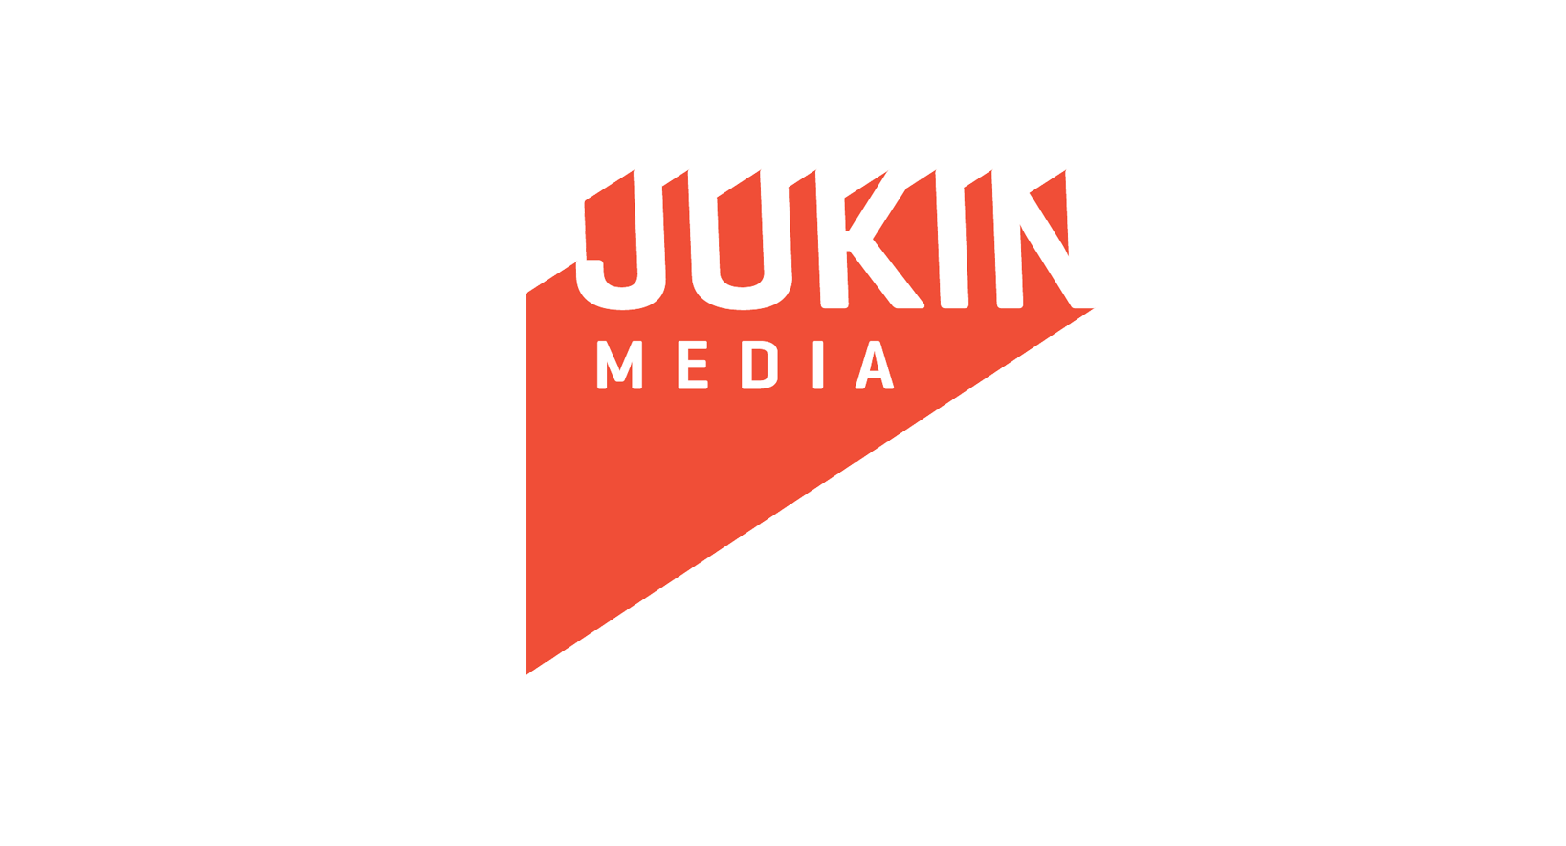 Jukin Media in orange and white font